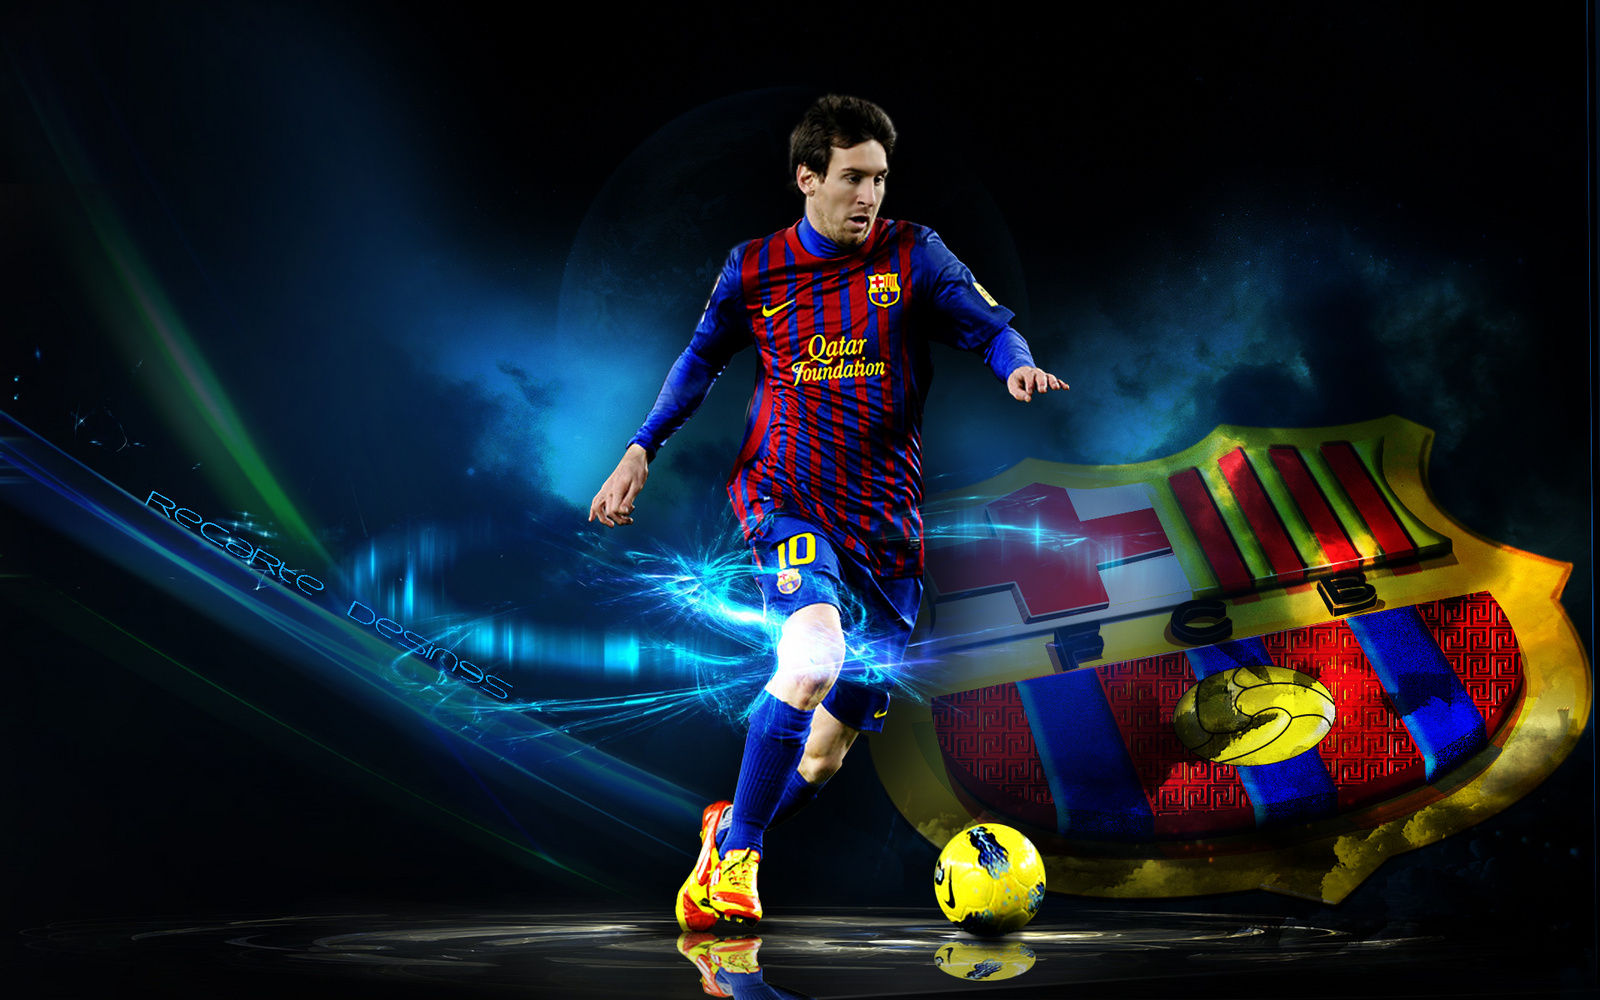 Wallpaperspoints Lionel Messi hd Wallpapers Full HD 1600x1000